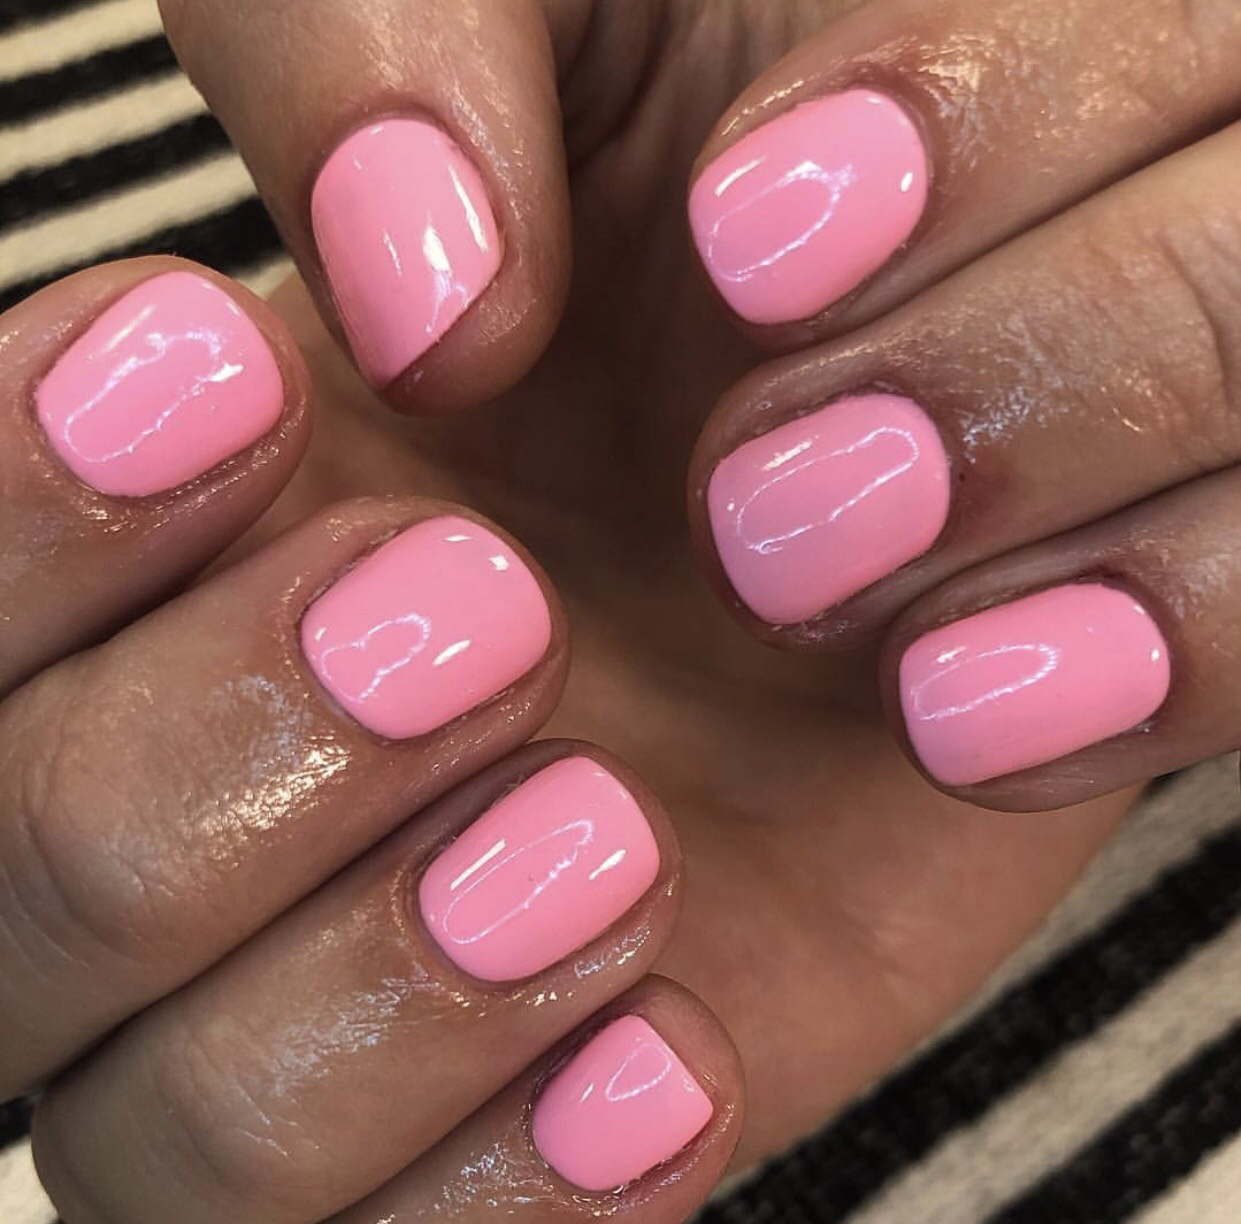 Beginners gel nail course